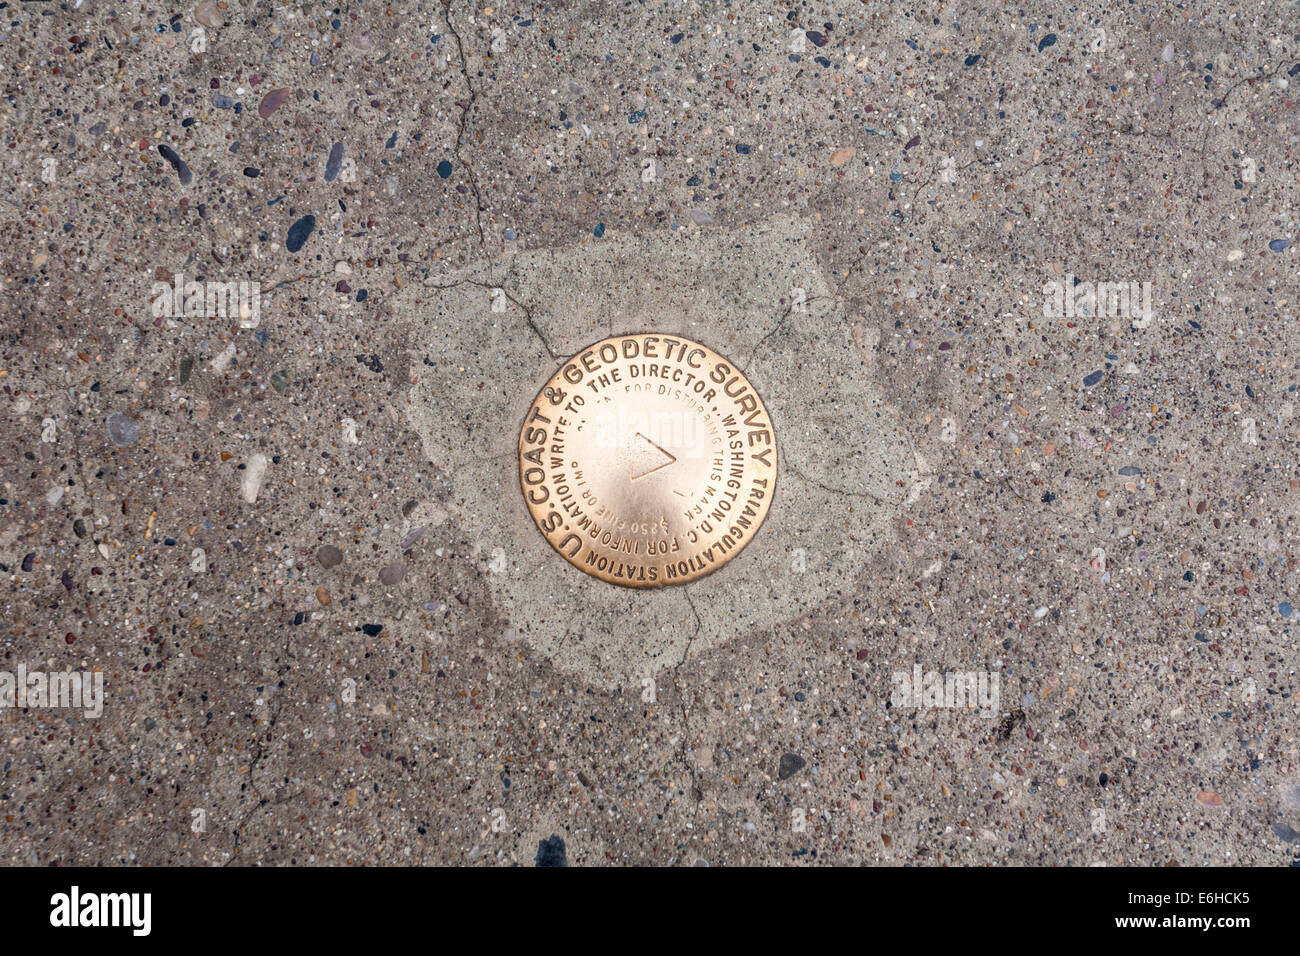 USGS survey marker at Hoover Dam in the Black Canyon of the Colorado River near Boulder City, Nevada - Stock Image